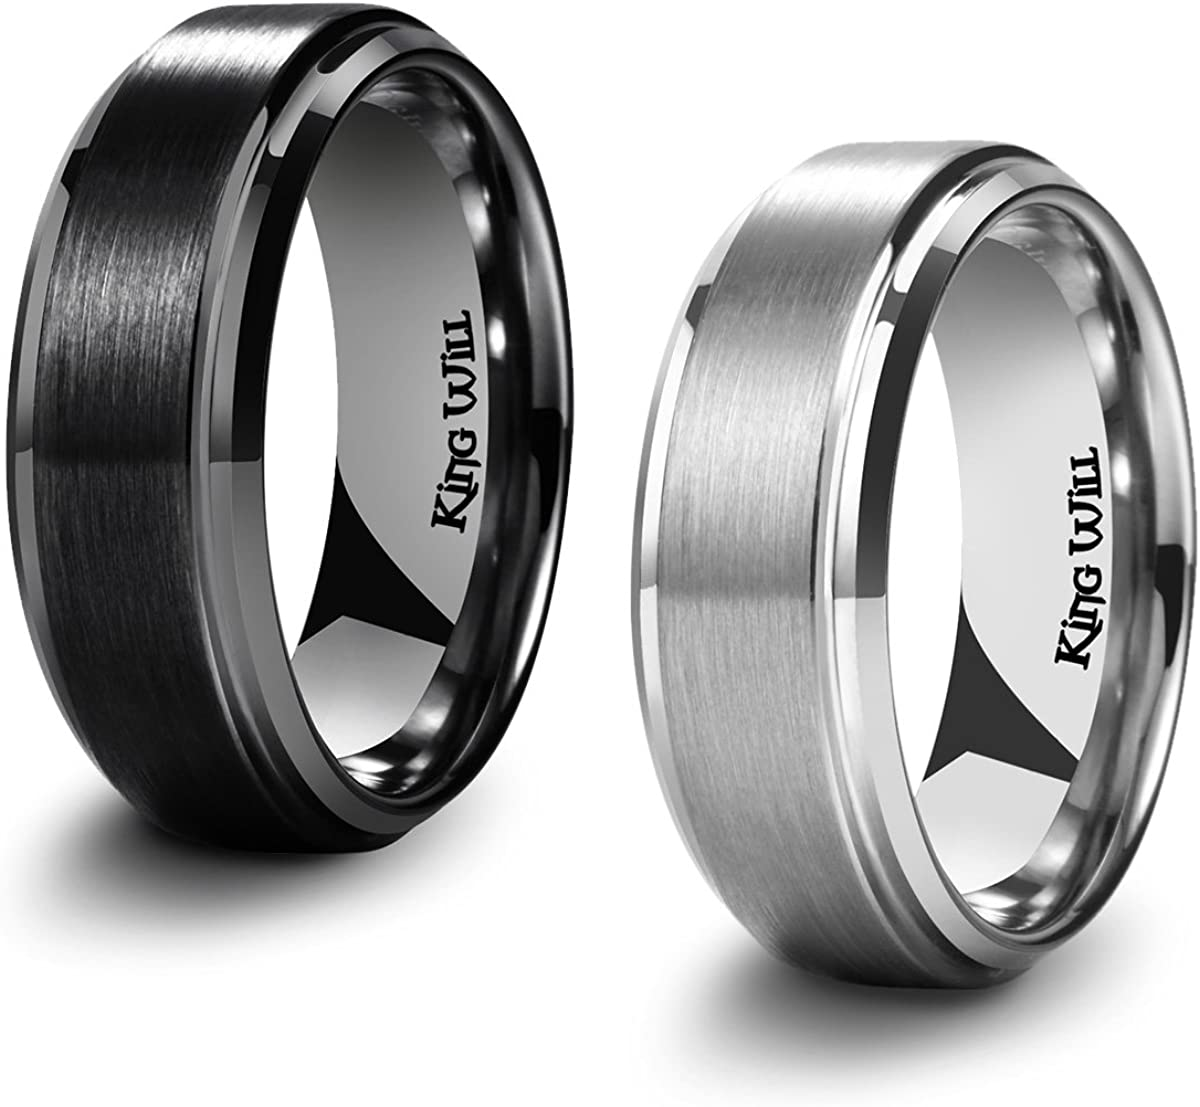 King Will Basic Men's Black Titanium Ring 8mm Polished Beveled Stepped Edge Matte Brushed Finish Center Wedding Band 2Pcs Set